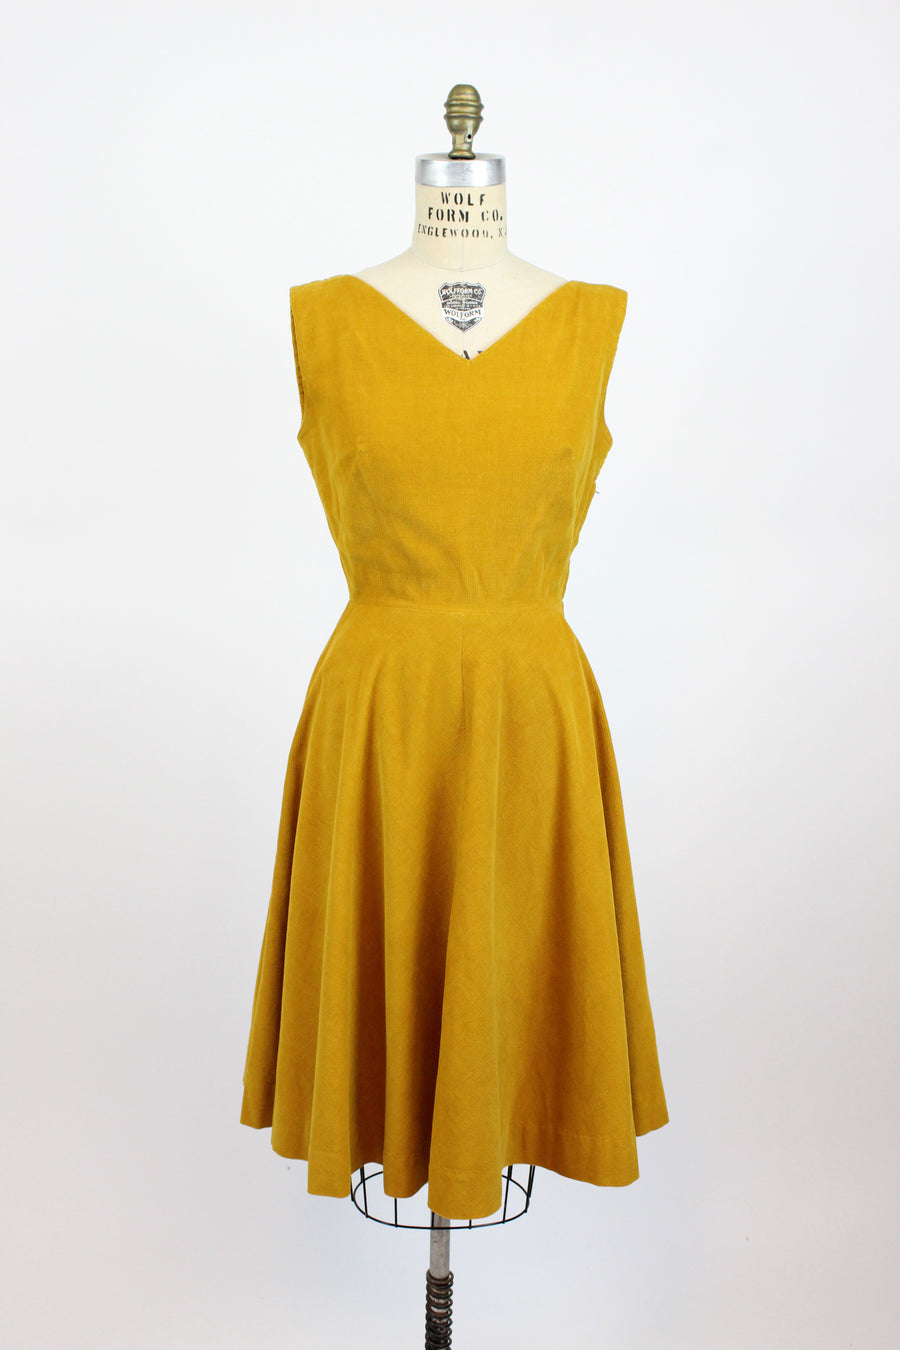 1950s corduroy dress small | vintage fit and flare dress | new in